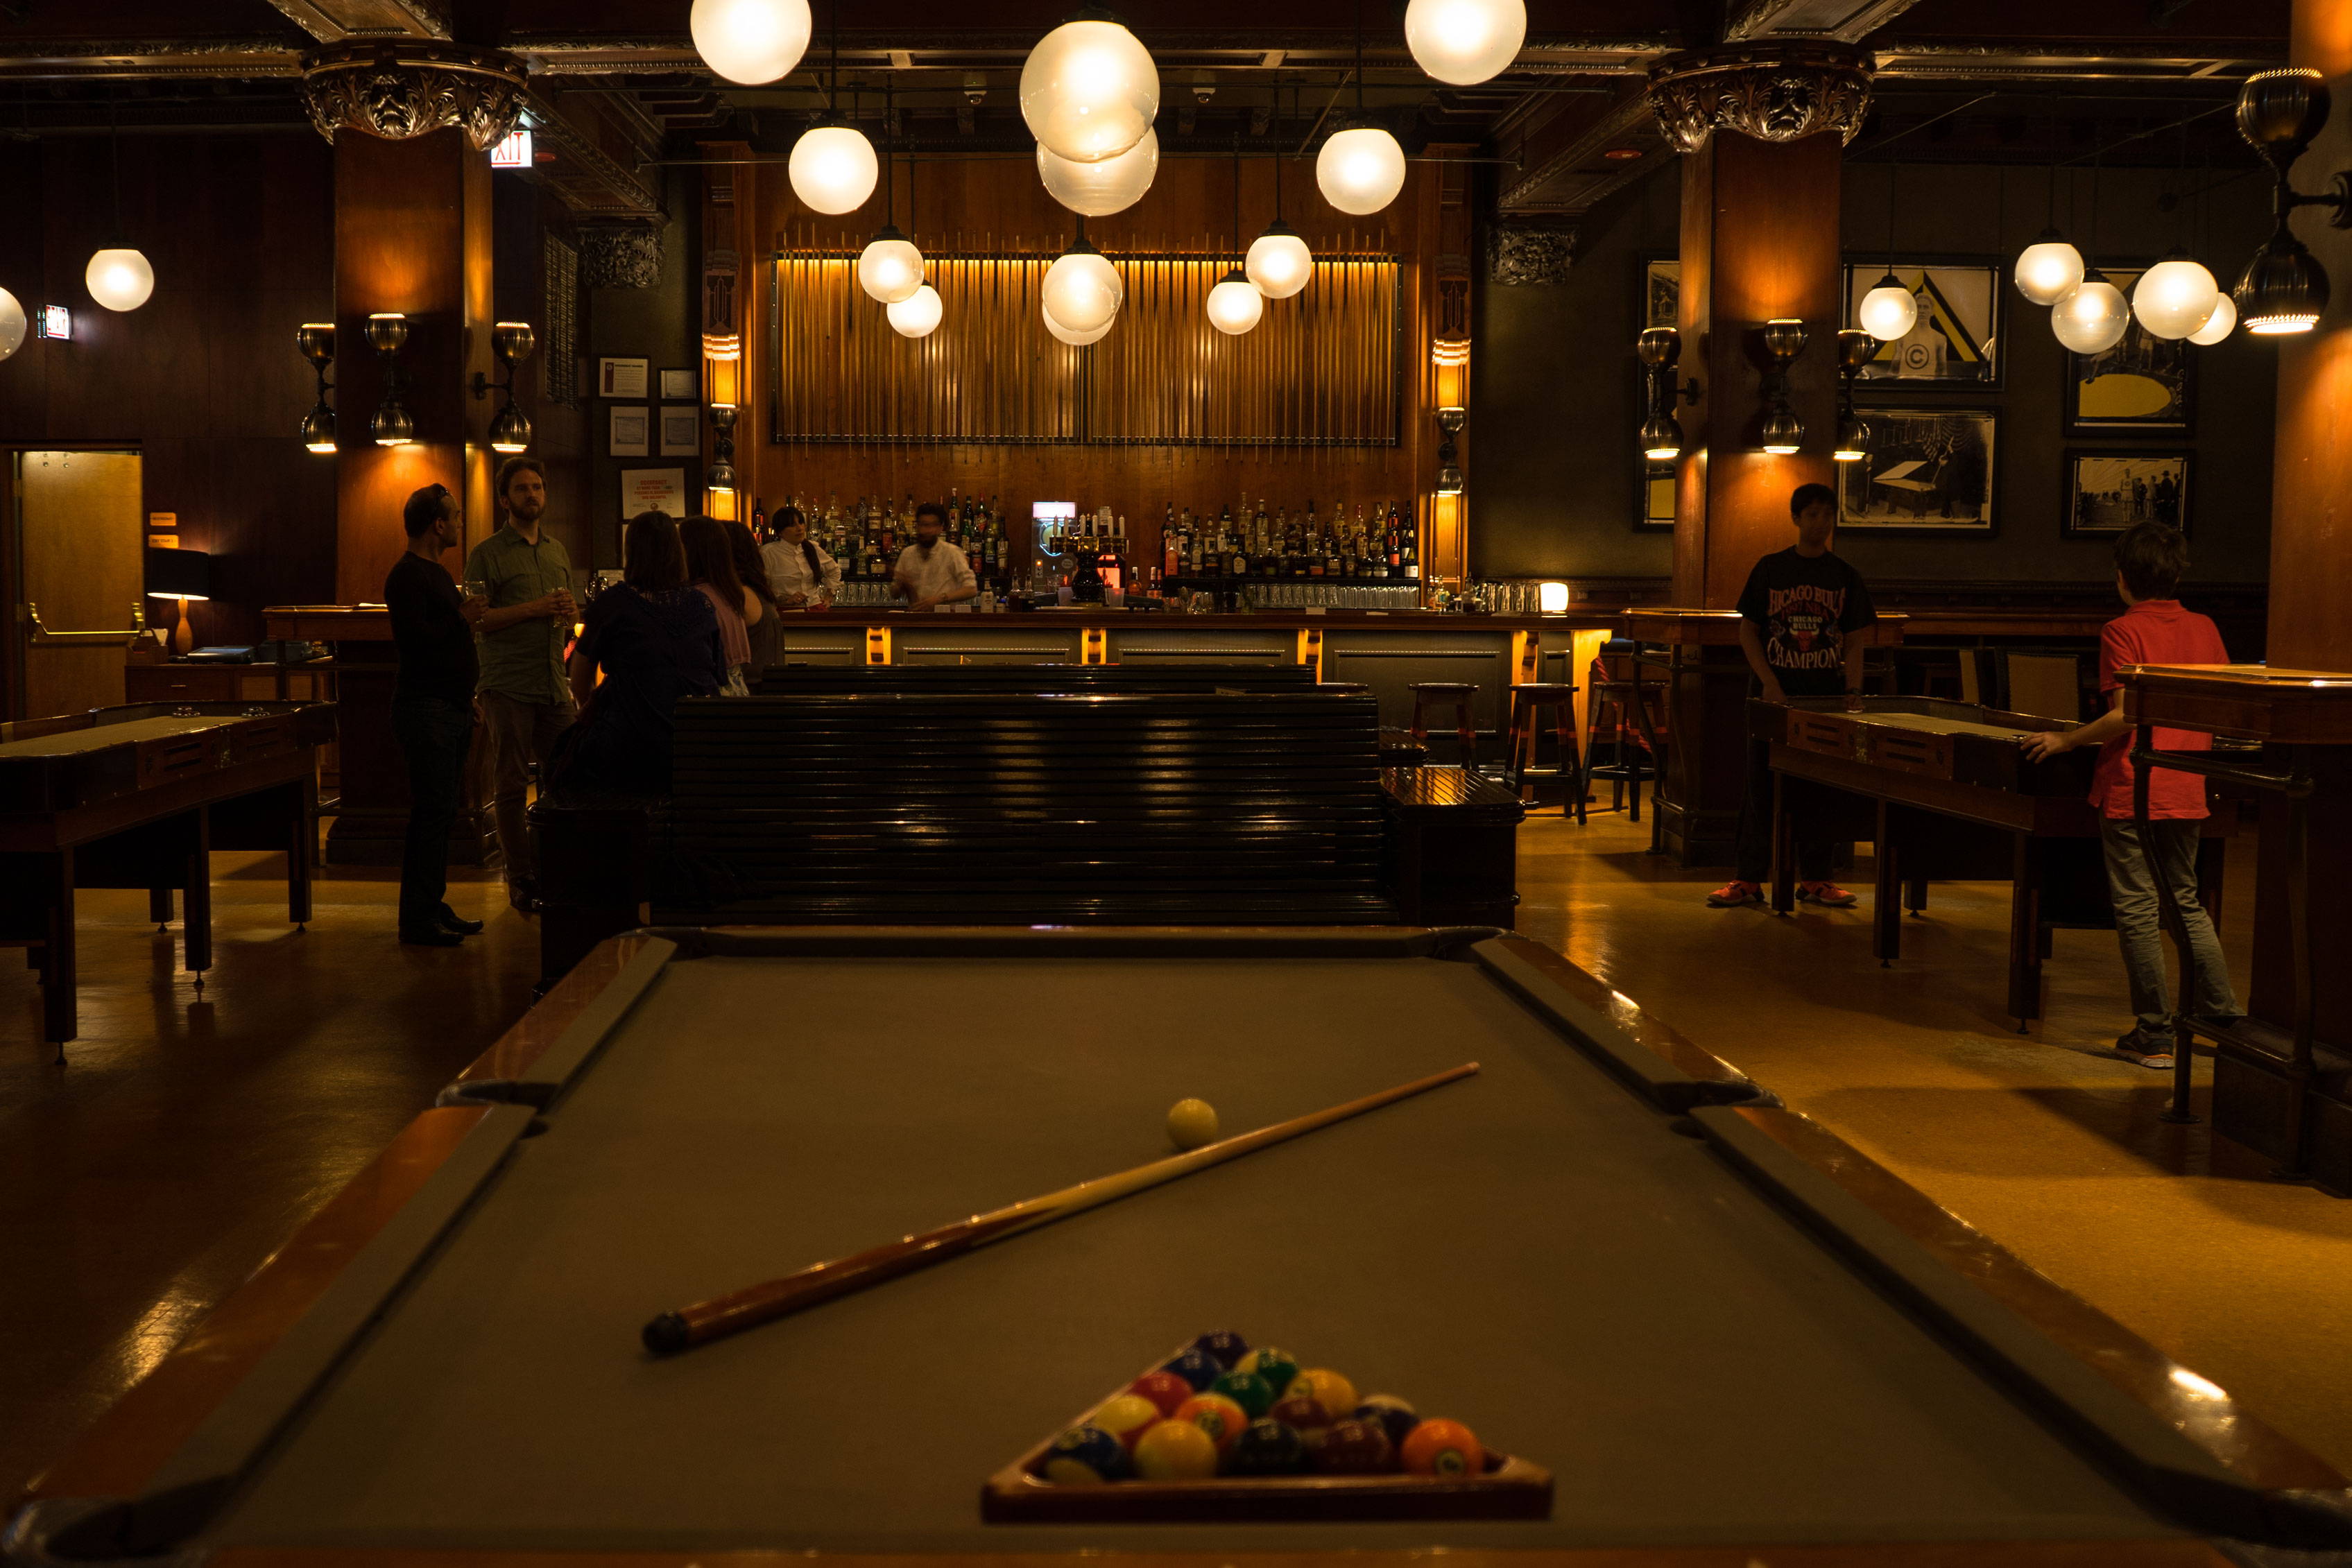 Billiards tables in the Chicago Athletic Association Hotel Game Room